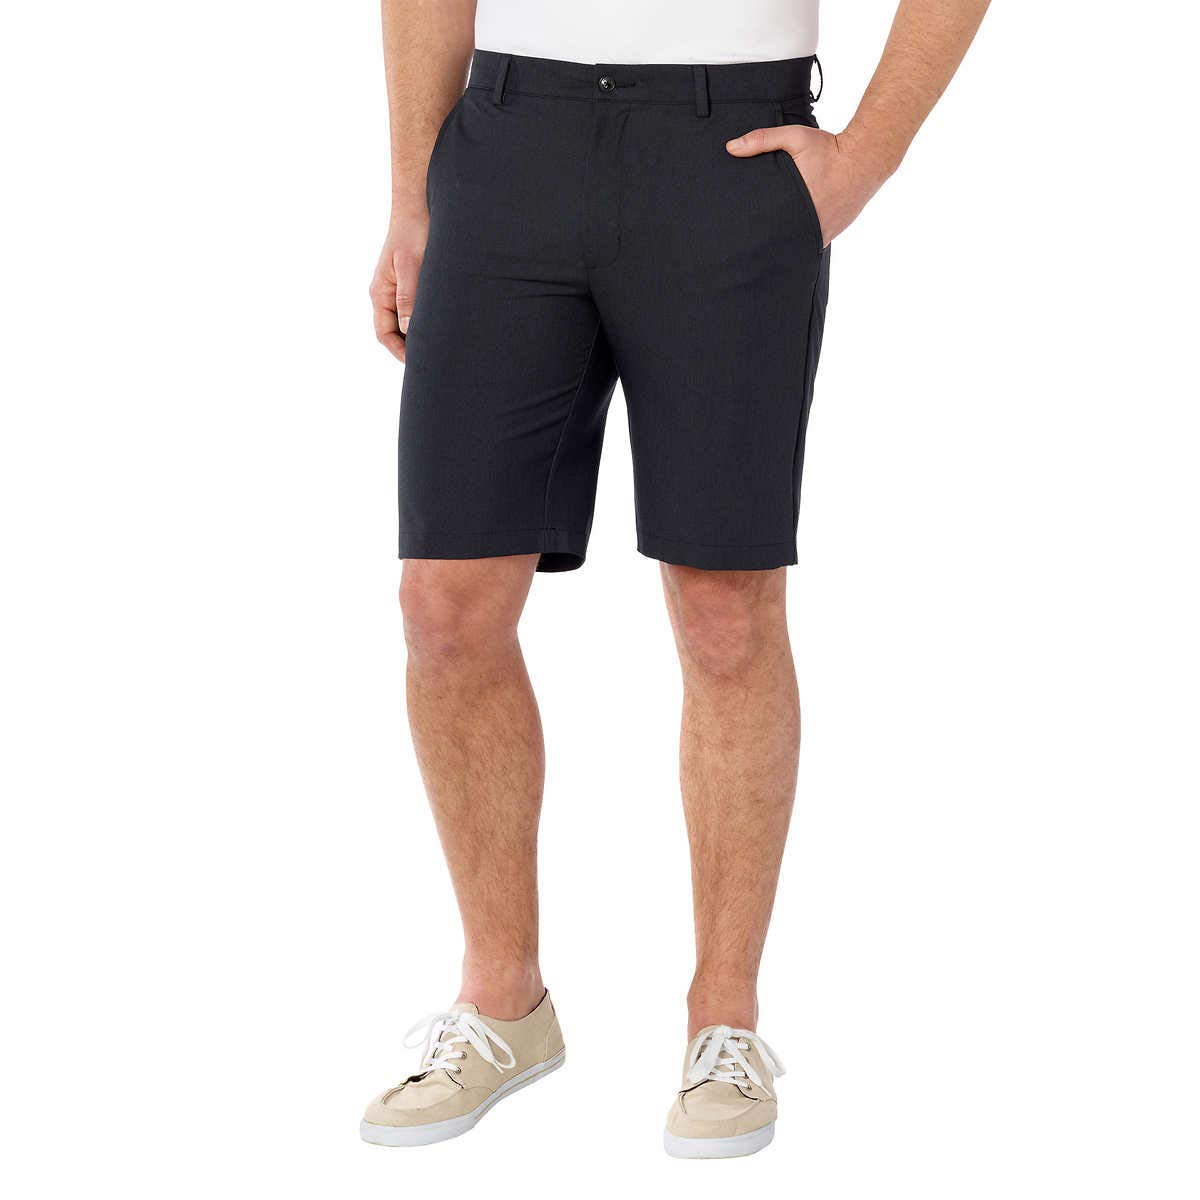 Select Shorts Ultimate Shorts Pantalones